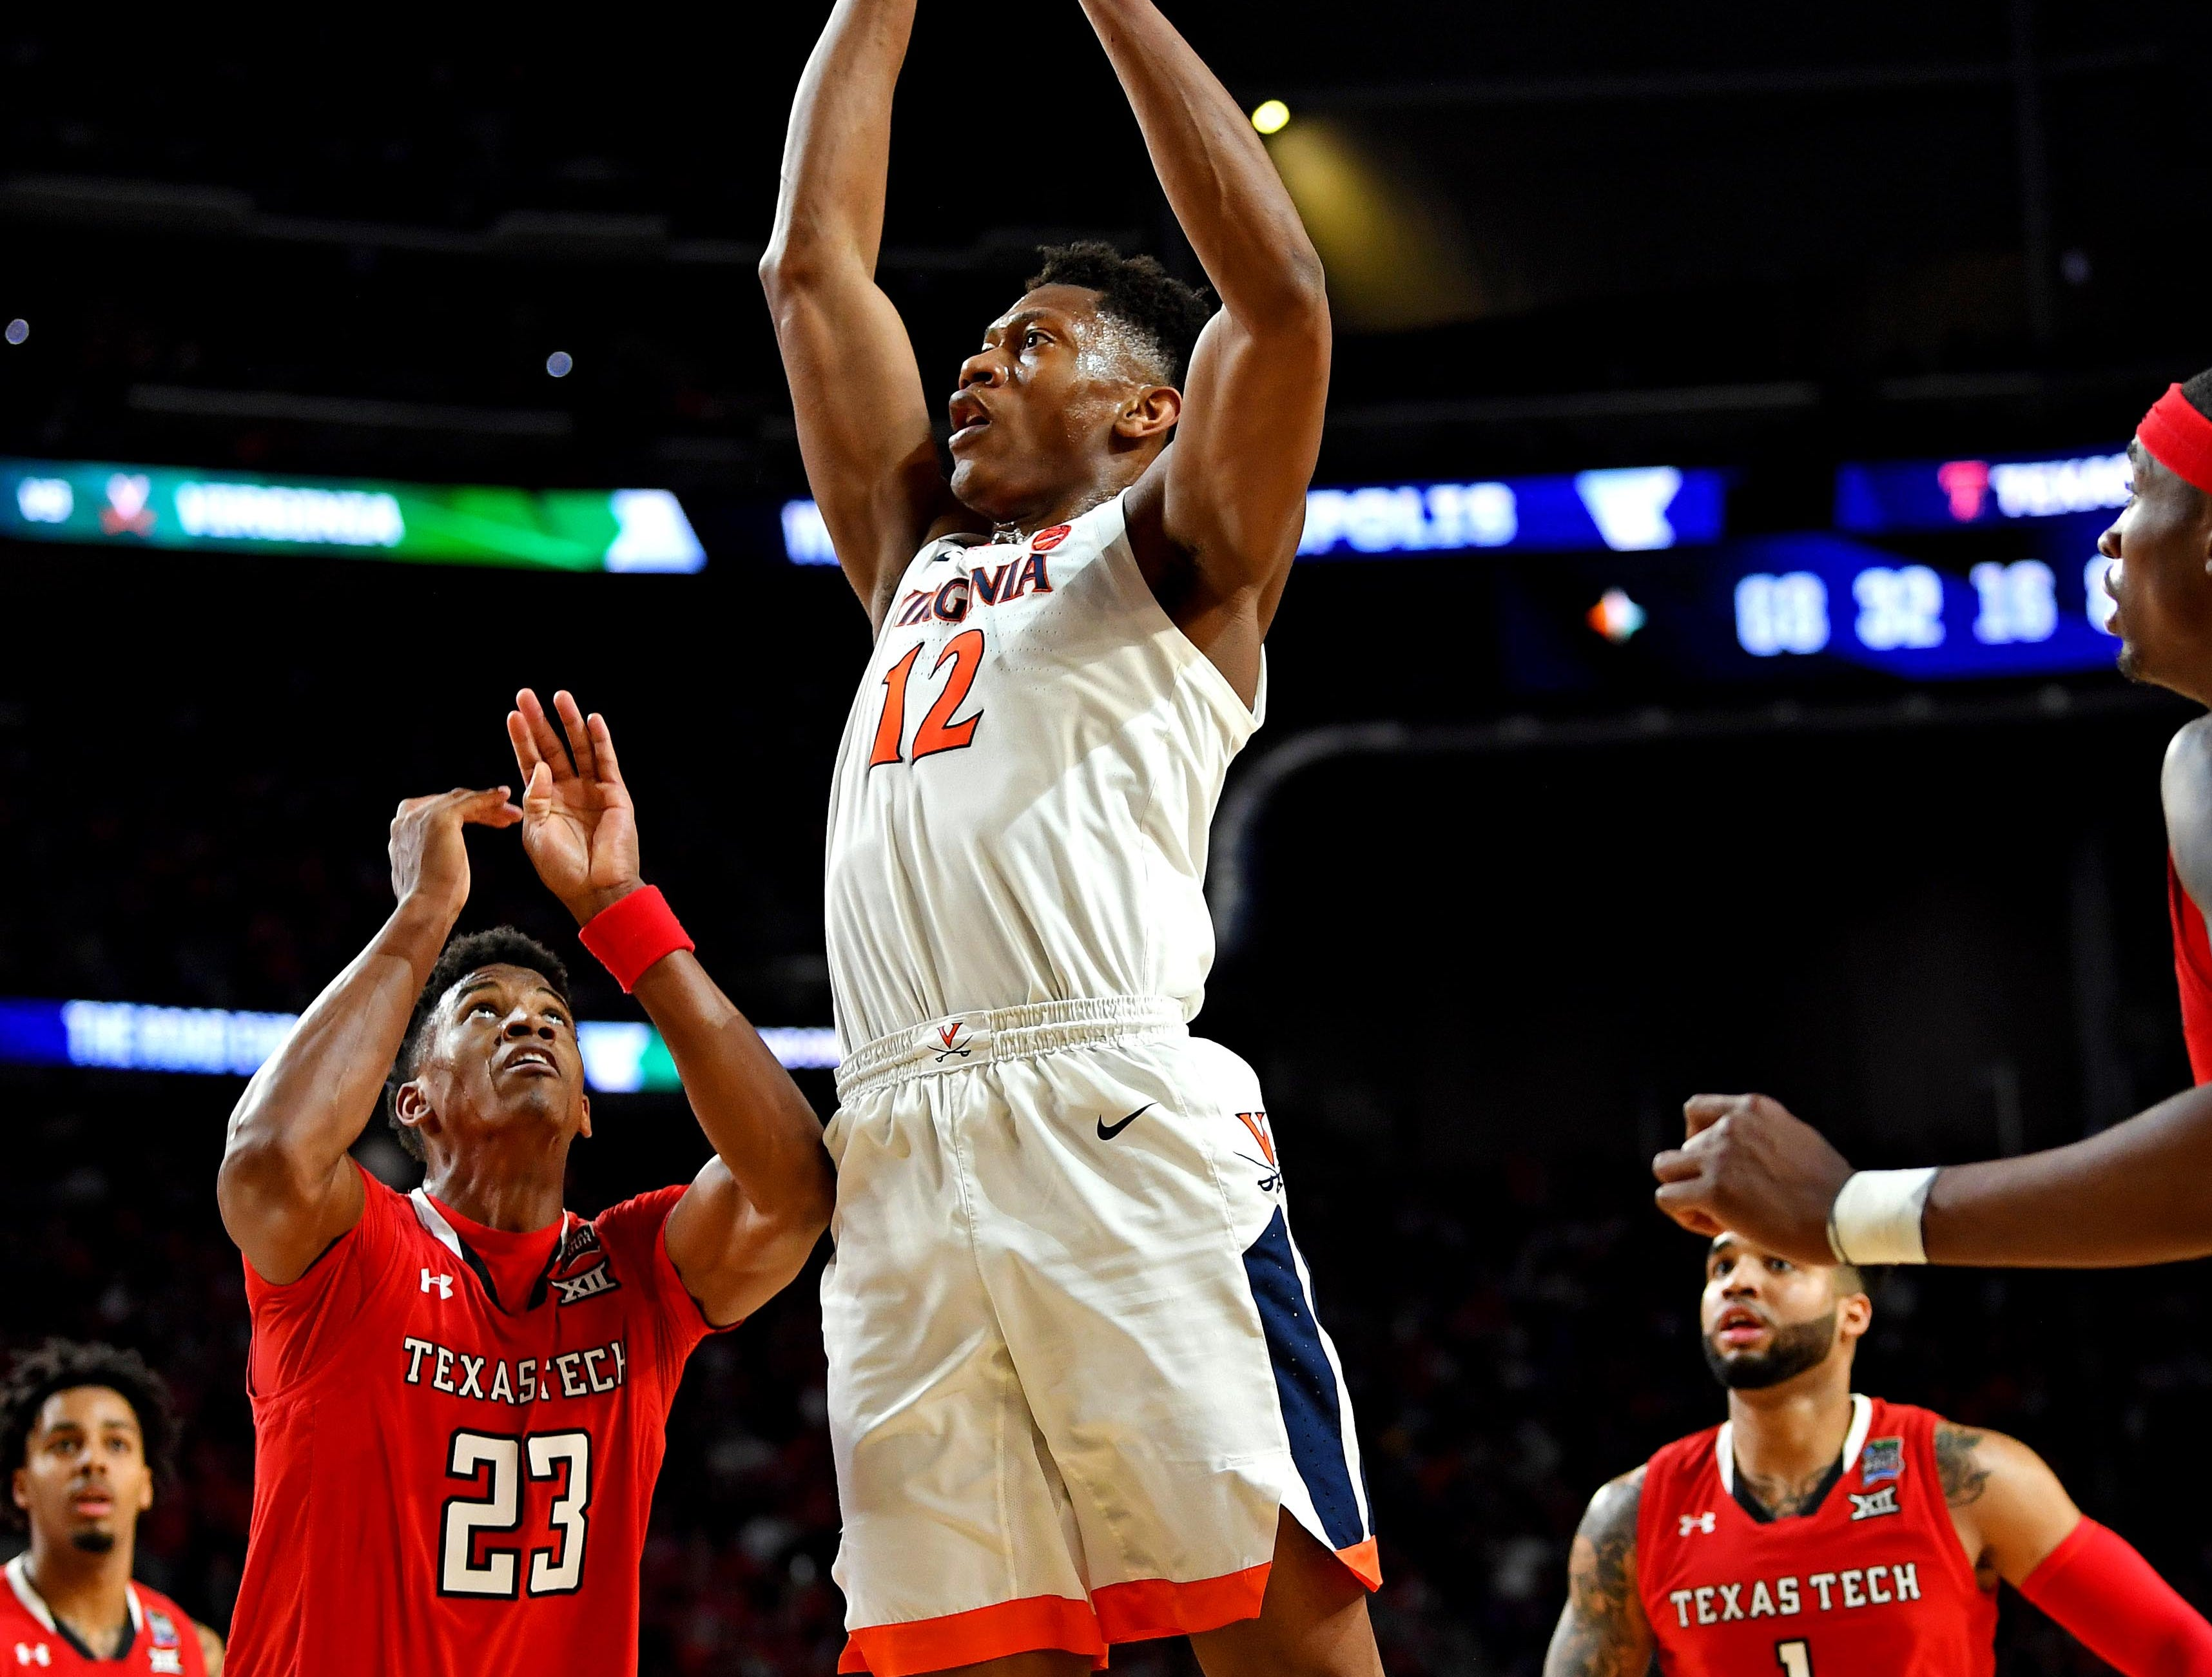 Apr 8, 2019; Minneapolis, MN, USA; Virginia Cavaliers guard De'Andre Hunter (12) shoots the ball against Texas Tech Red Raiders guard Jarrett Culver (23) during the first half in the championship game of the 2019 men's Final Four at US Bank Stadium. Mandatory Credit: Bob Donnan-USA TODAY Sports